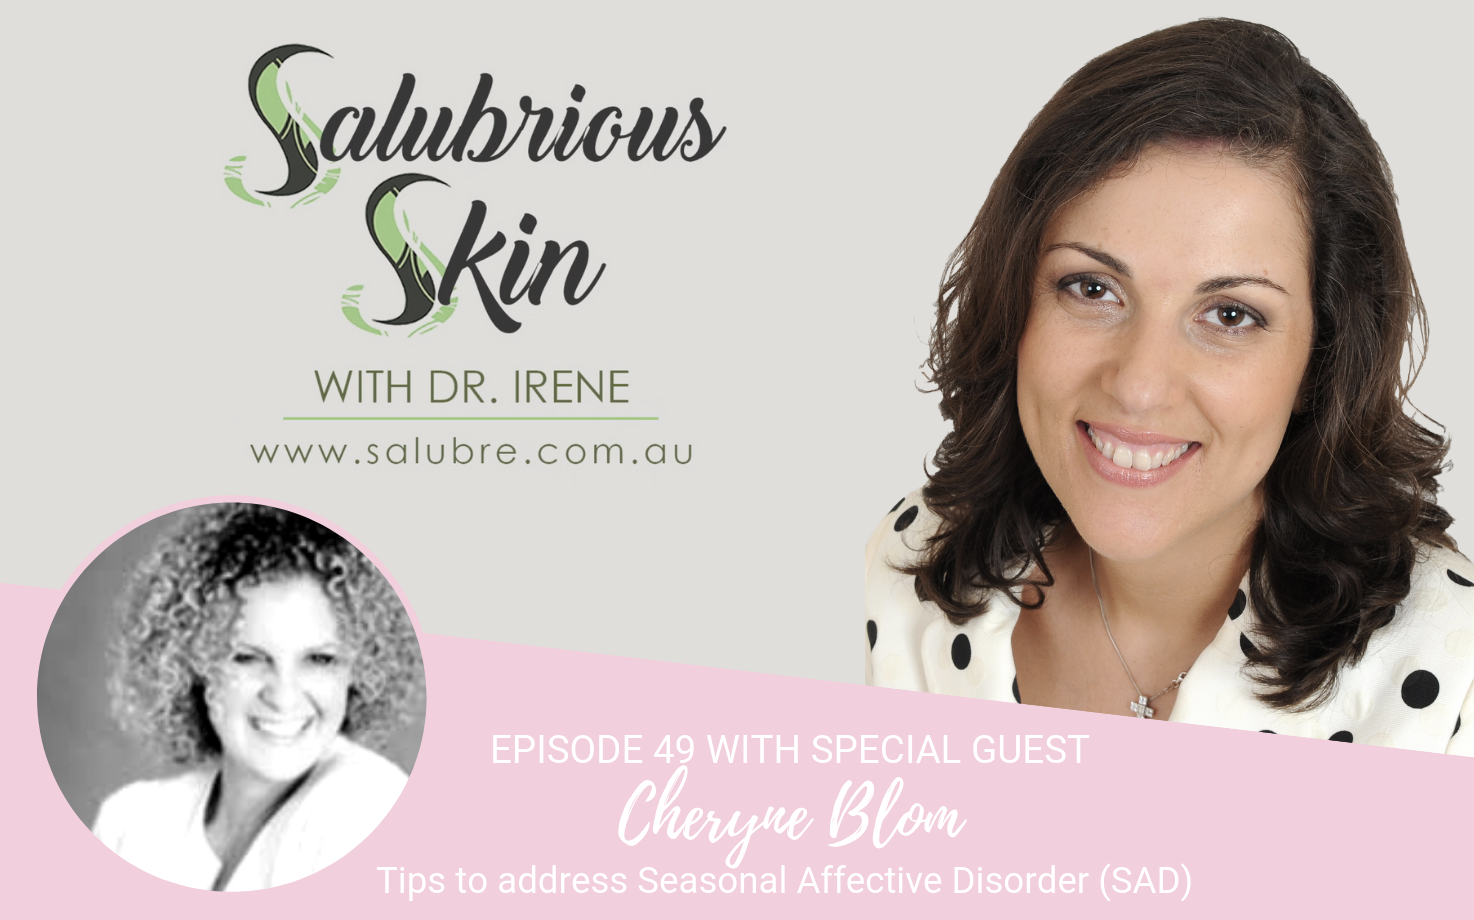 Podcast 49: Tips to address Seasonal Affective Disorder (SAD) from expert Cheryne Blom